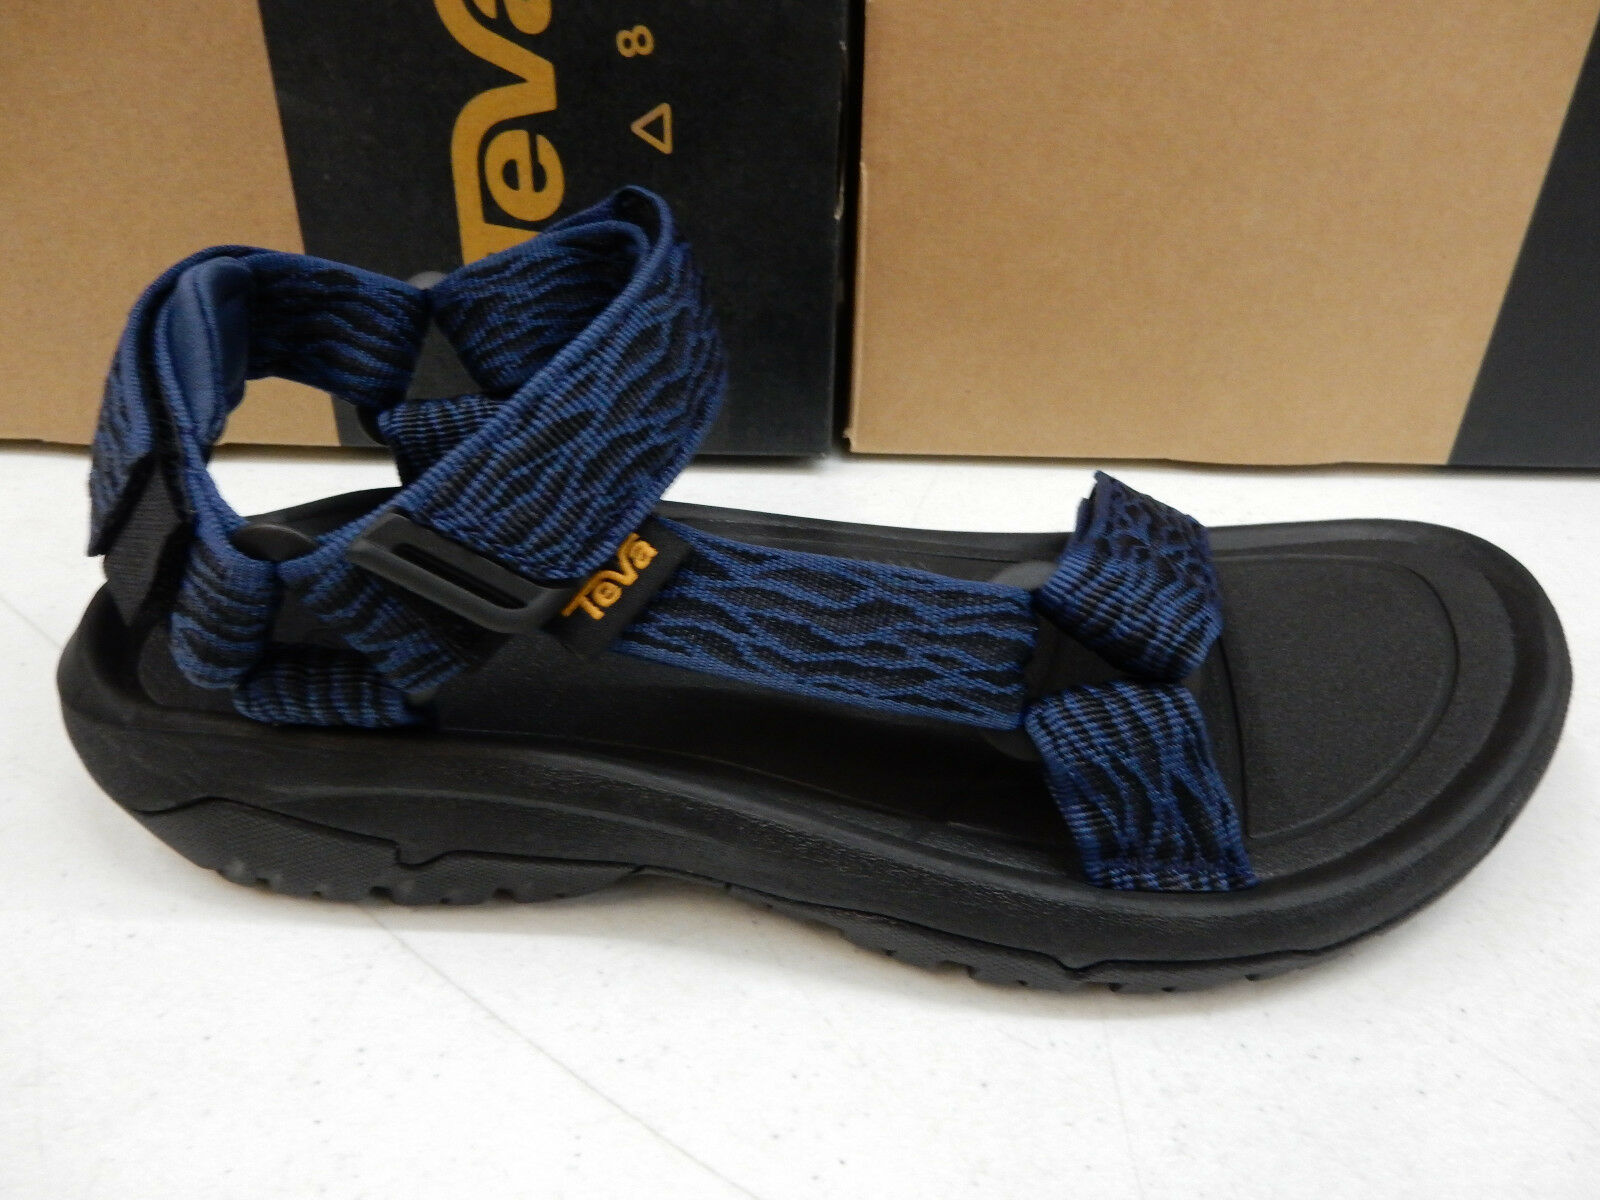 TEVA MENS SANDALS HURRICANE XLT2 RAPIDS INSIGNIA blueE SIZE 12